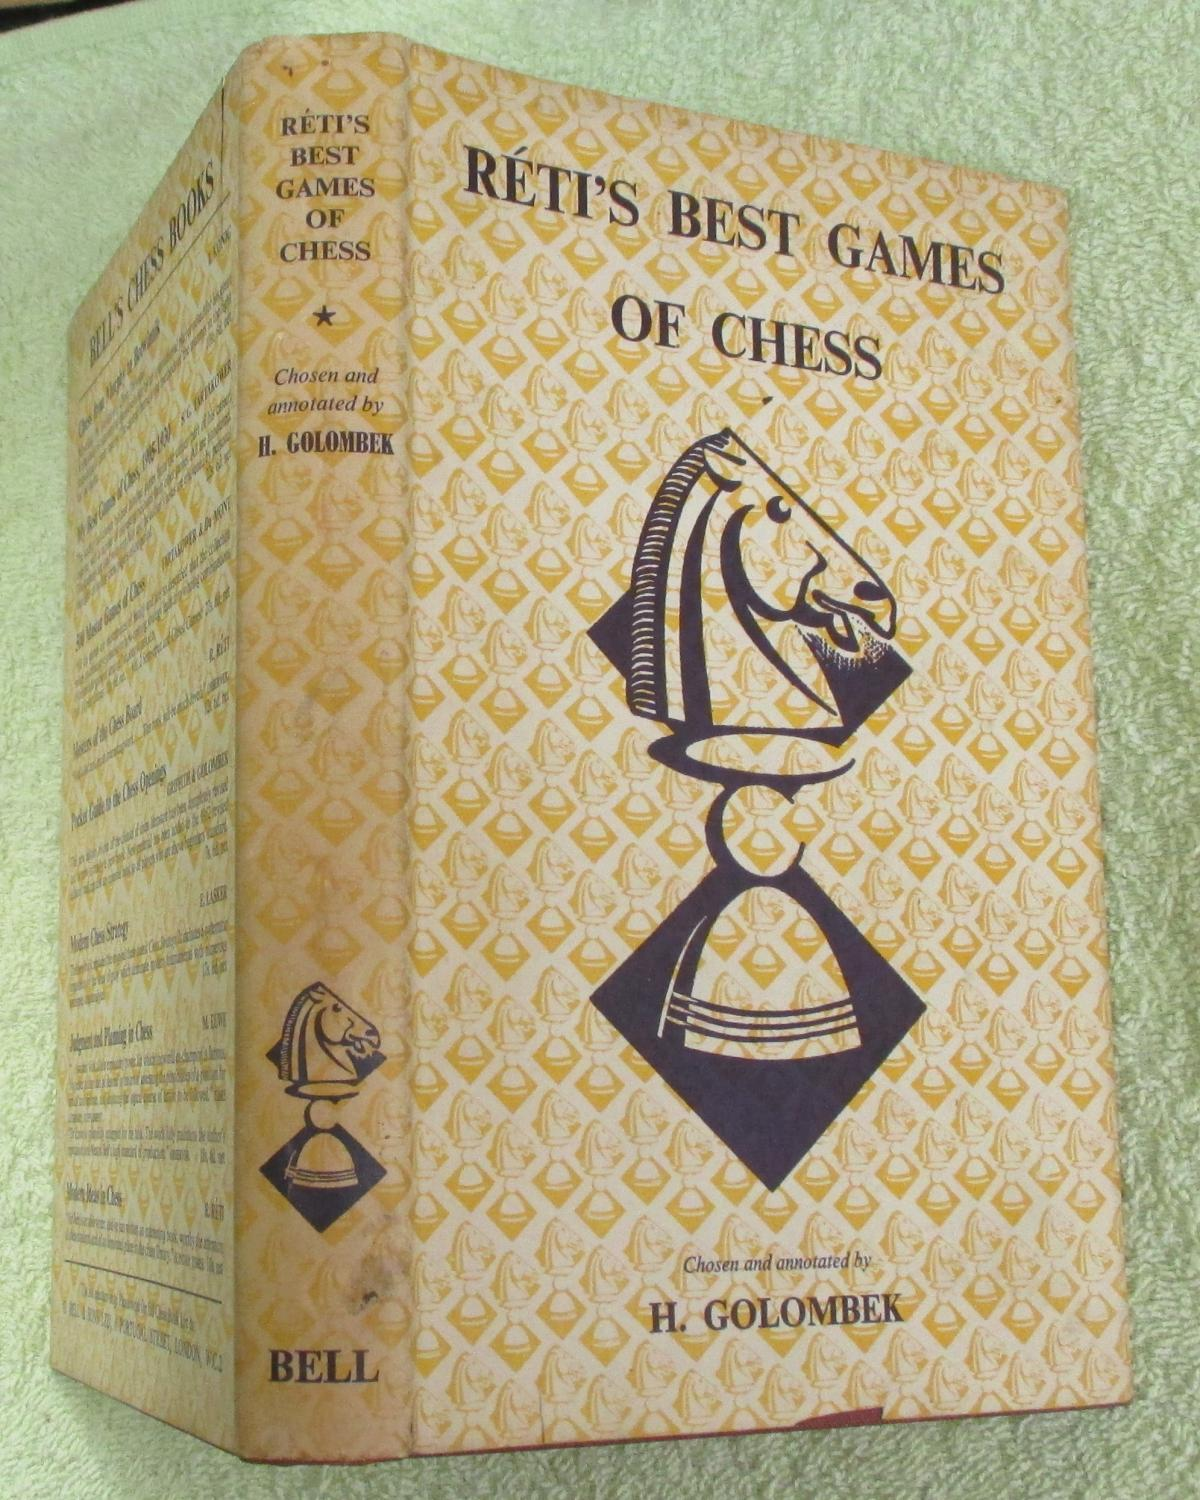 Réti's Best Games of Chess, Harry Golombek, Bell, 1954